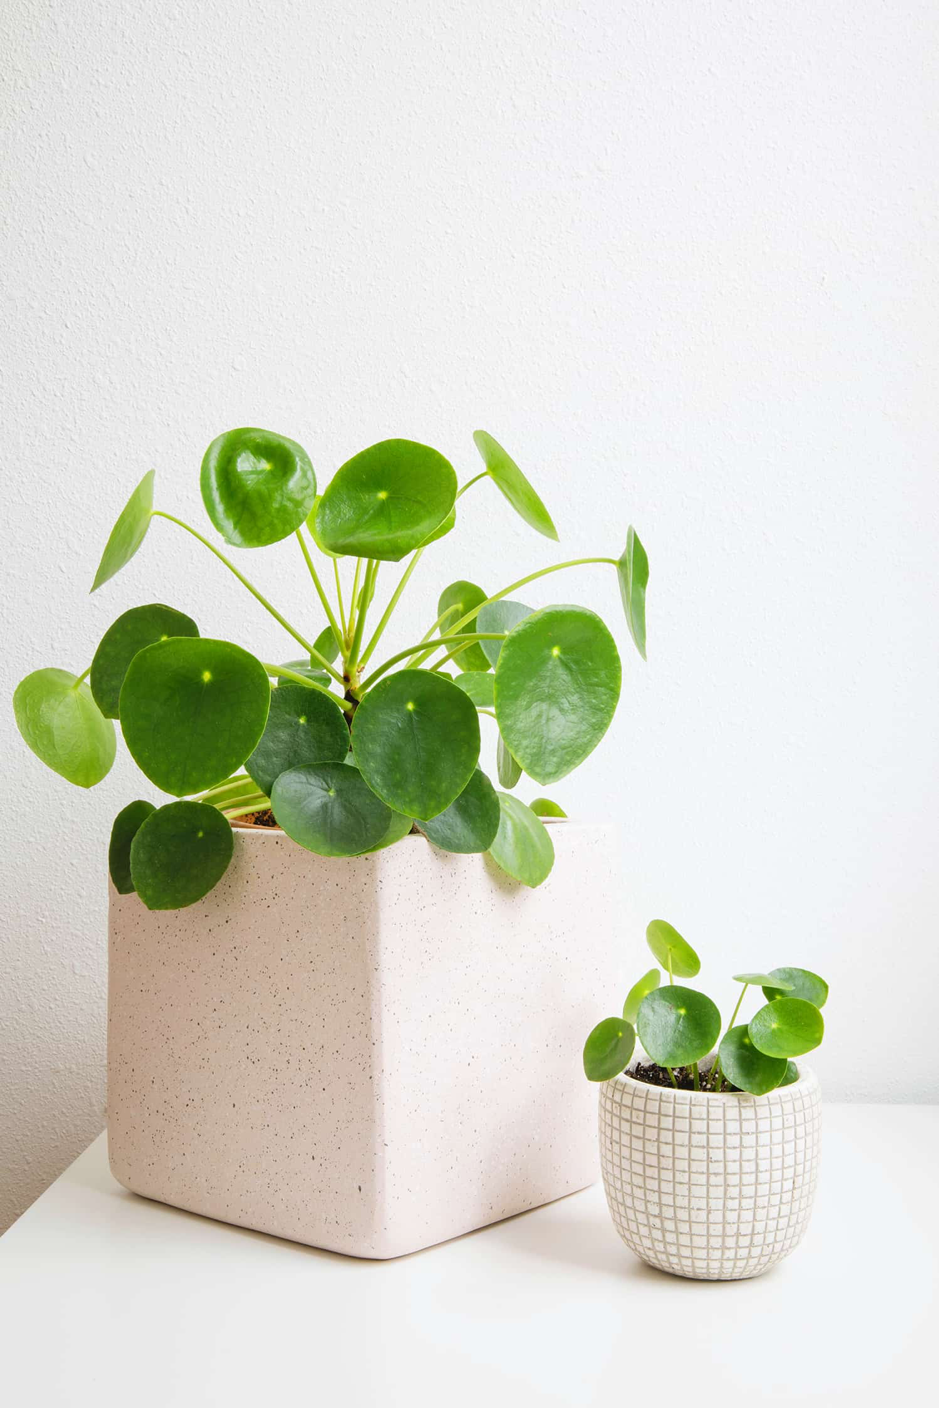 a photo of two pilea plants